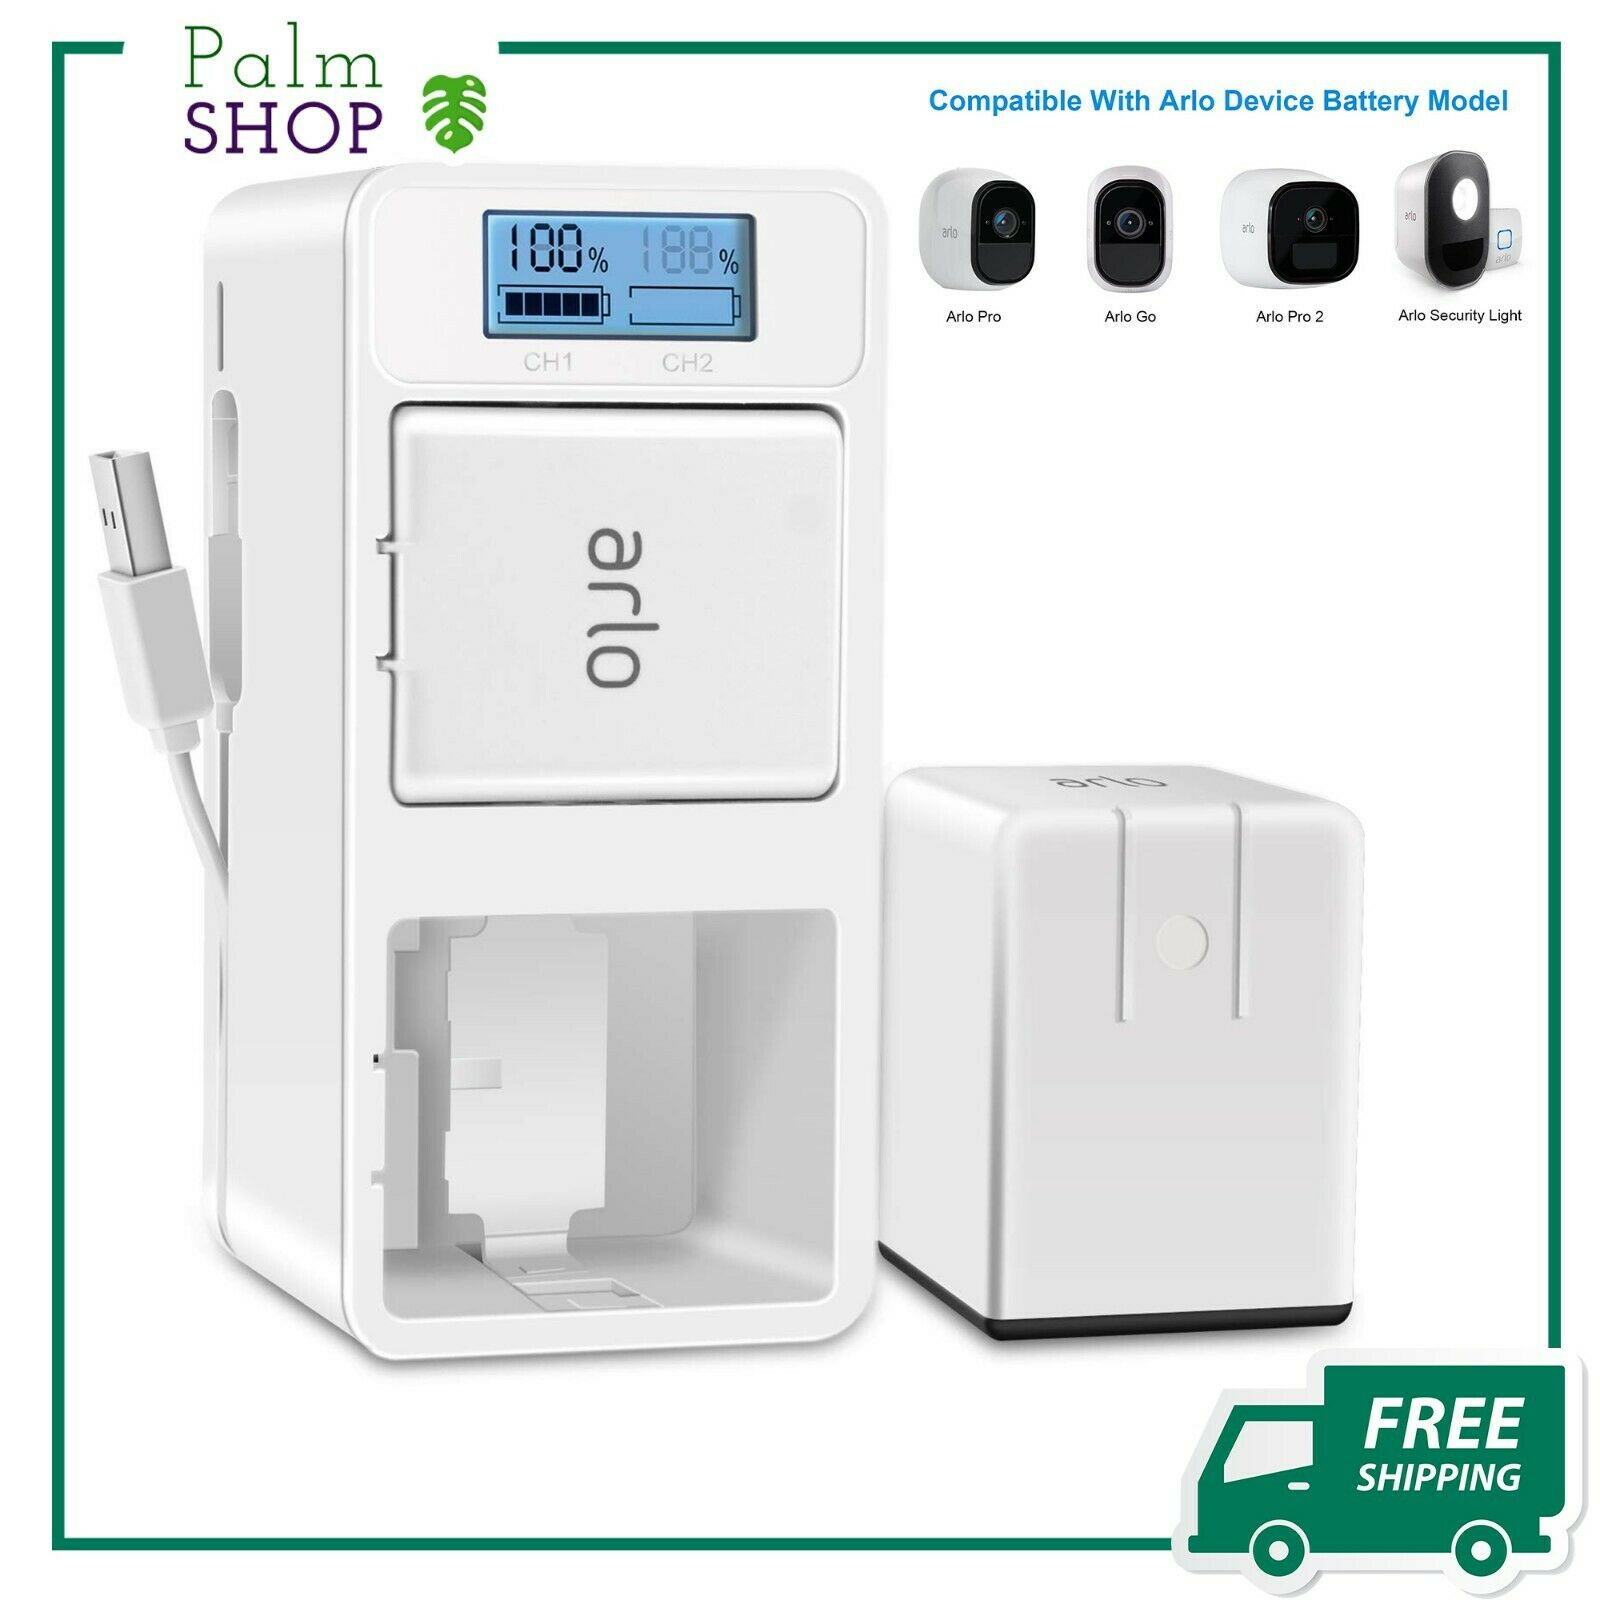 Arlo Rechargeable Battery Charger Station Dual Batteries type C USB Cable New